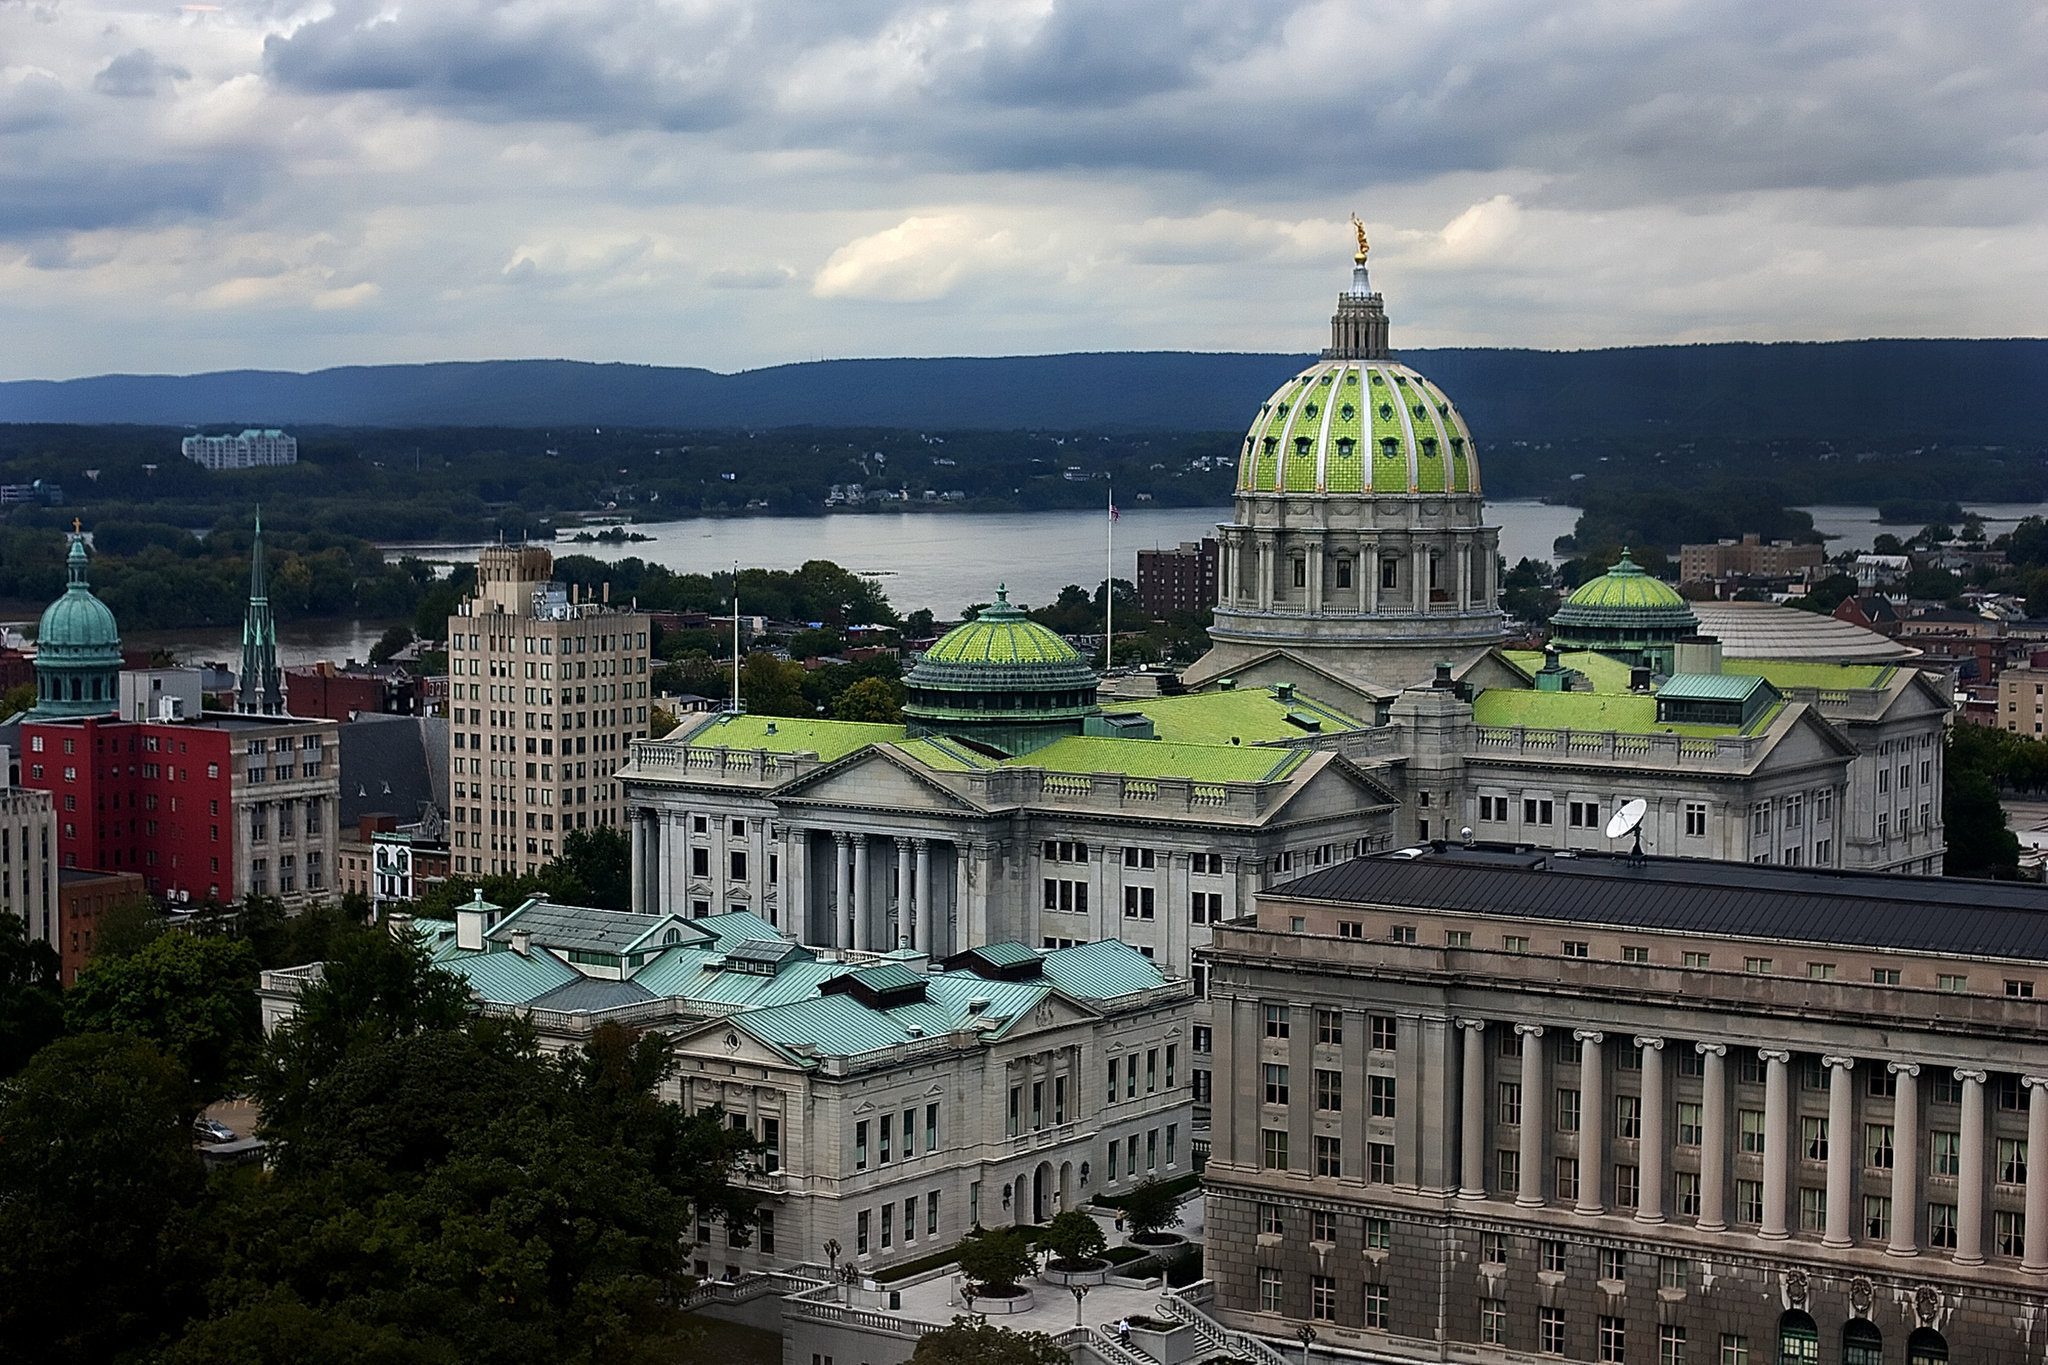 Can anyone direct me to info of Pennsylvaina's laws regarding children being charged as adults?